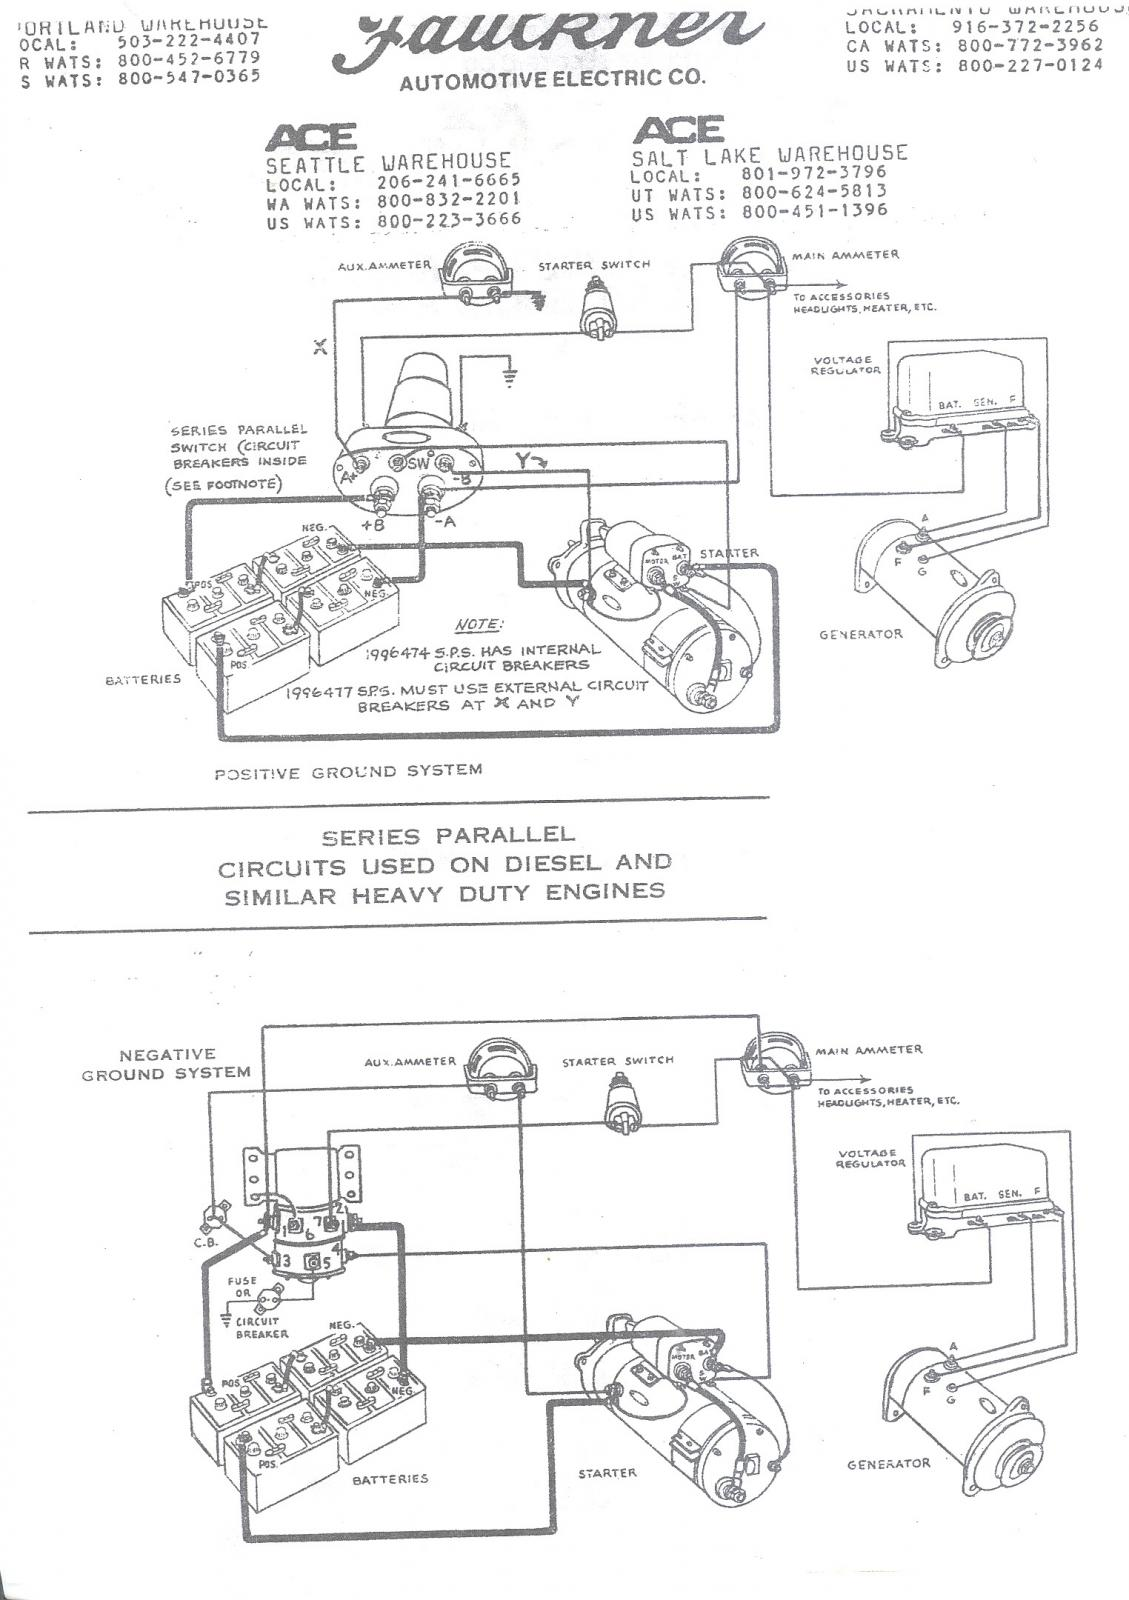 Delco Wiring Schematic Wiring Schematic For Series Parallel Switch Antique